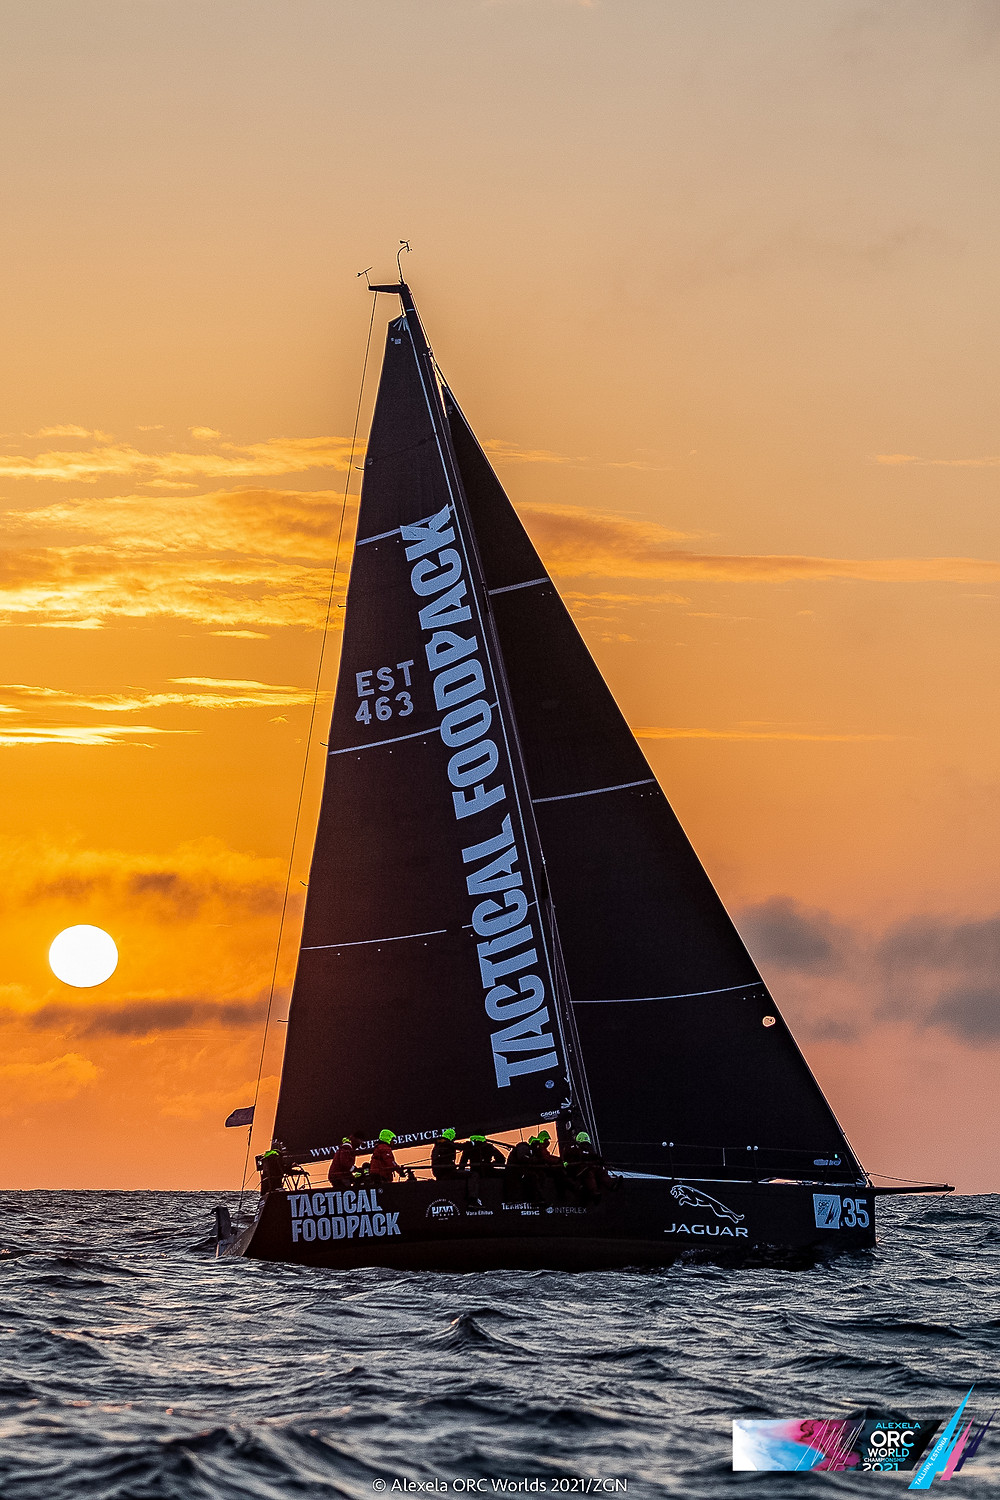 Olympic - Tactical Foodpack Sailing Team © Alexela ORC Worlds 2021   ZGN